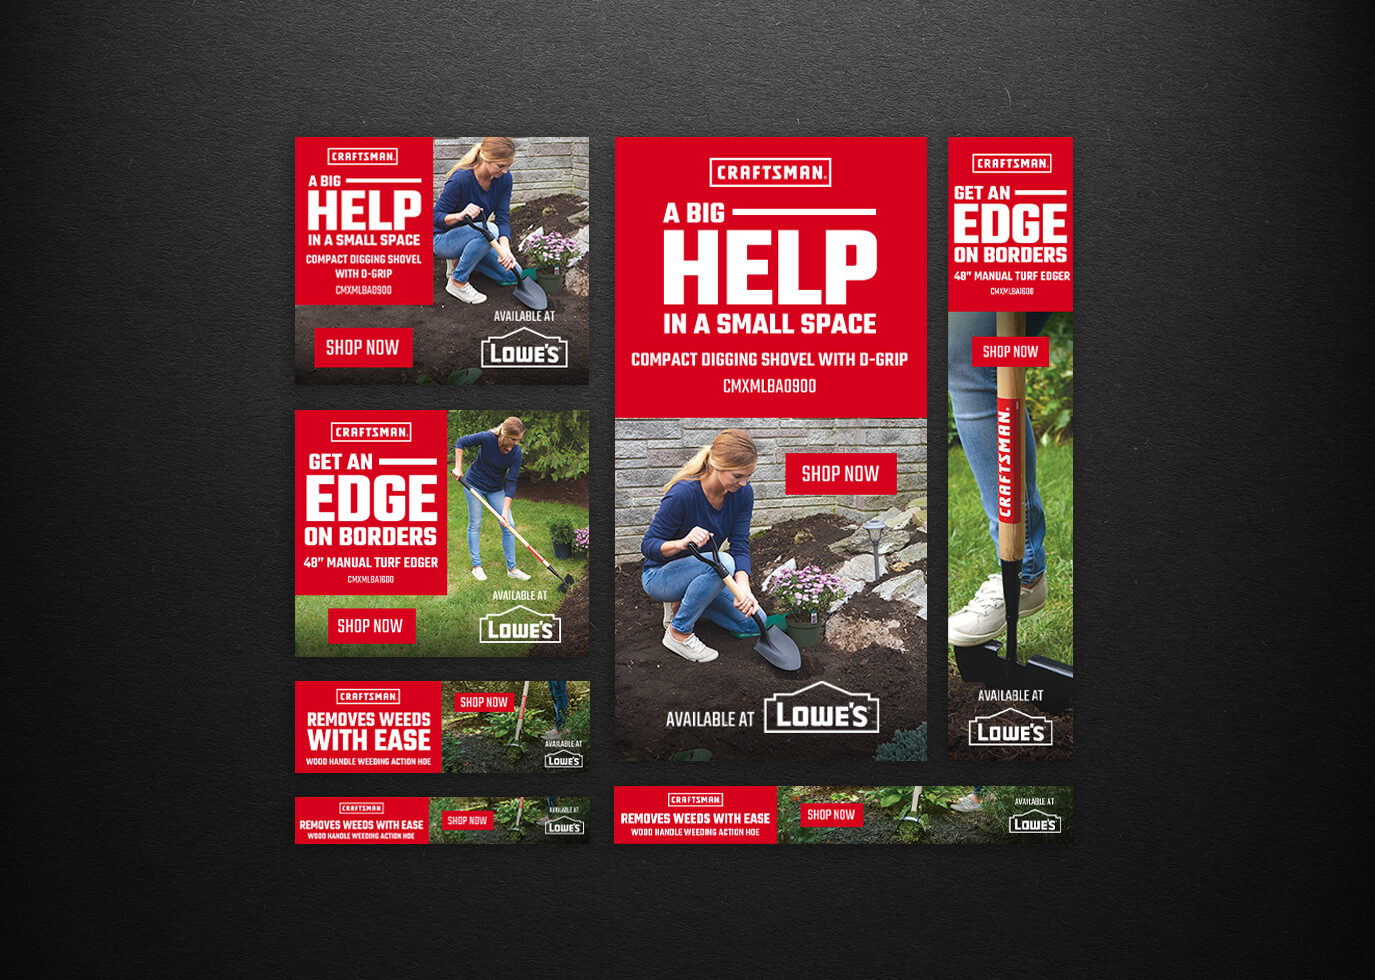 Lowes Campaign featuring Craftsman